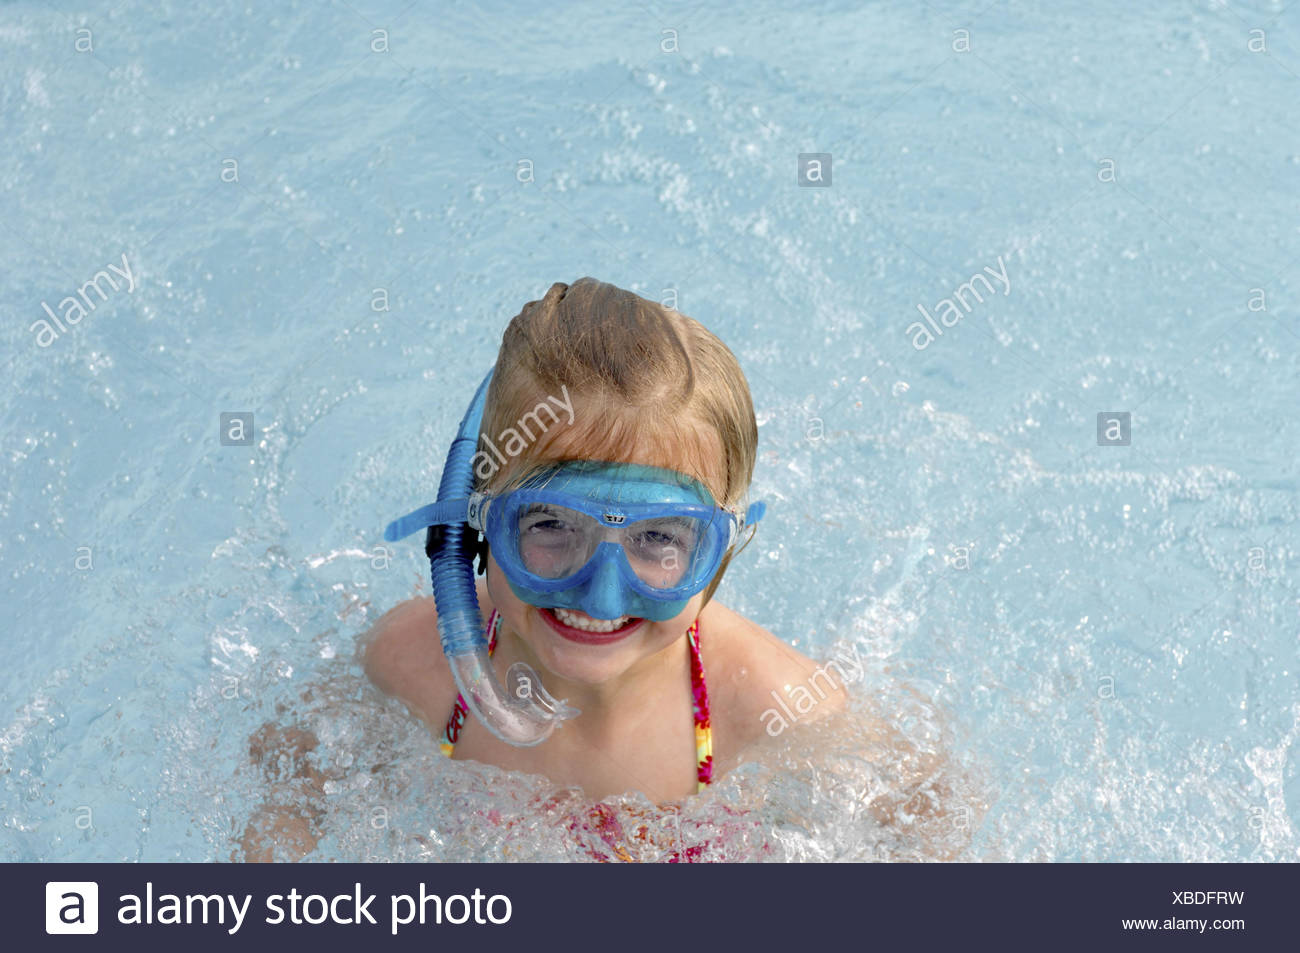 Divers Glasses Stock Photos Divers Glasses Stock Images Alamy